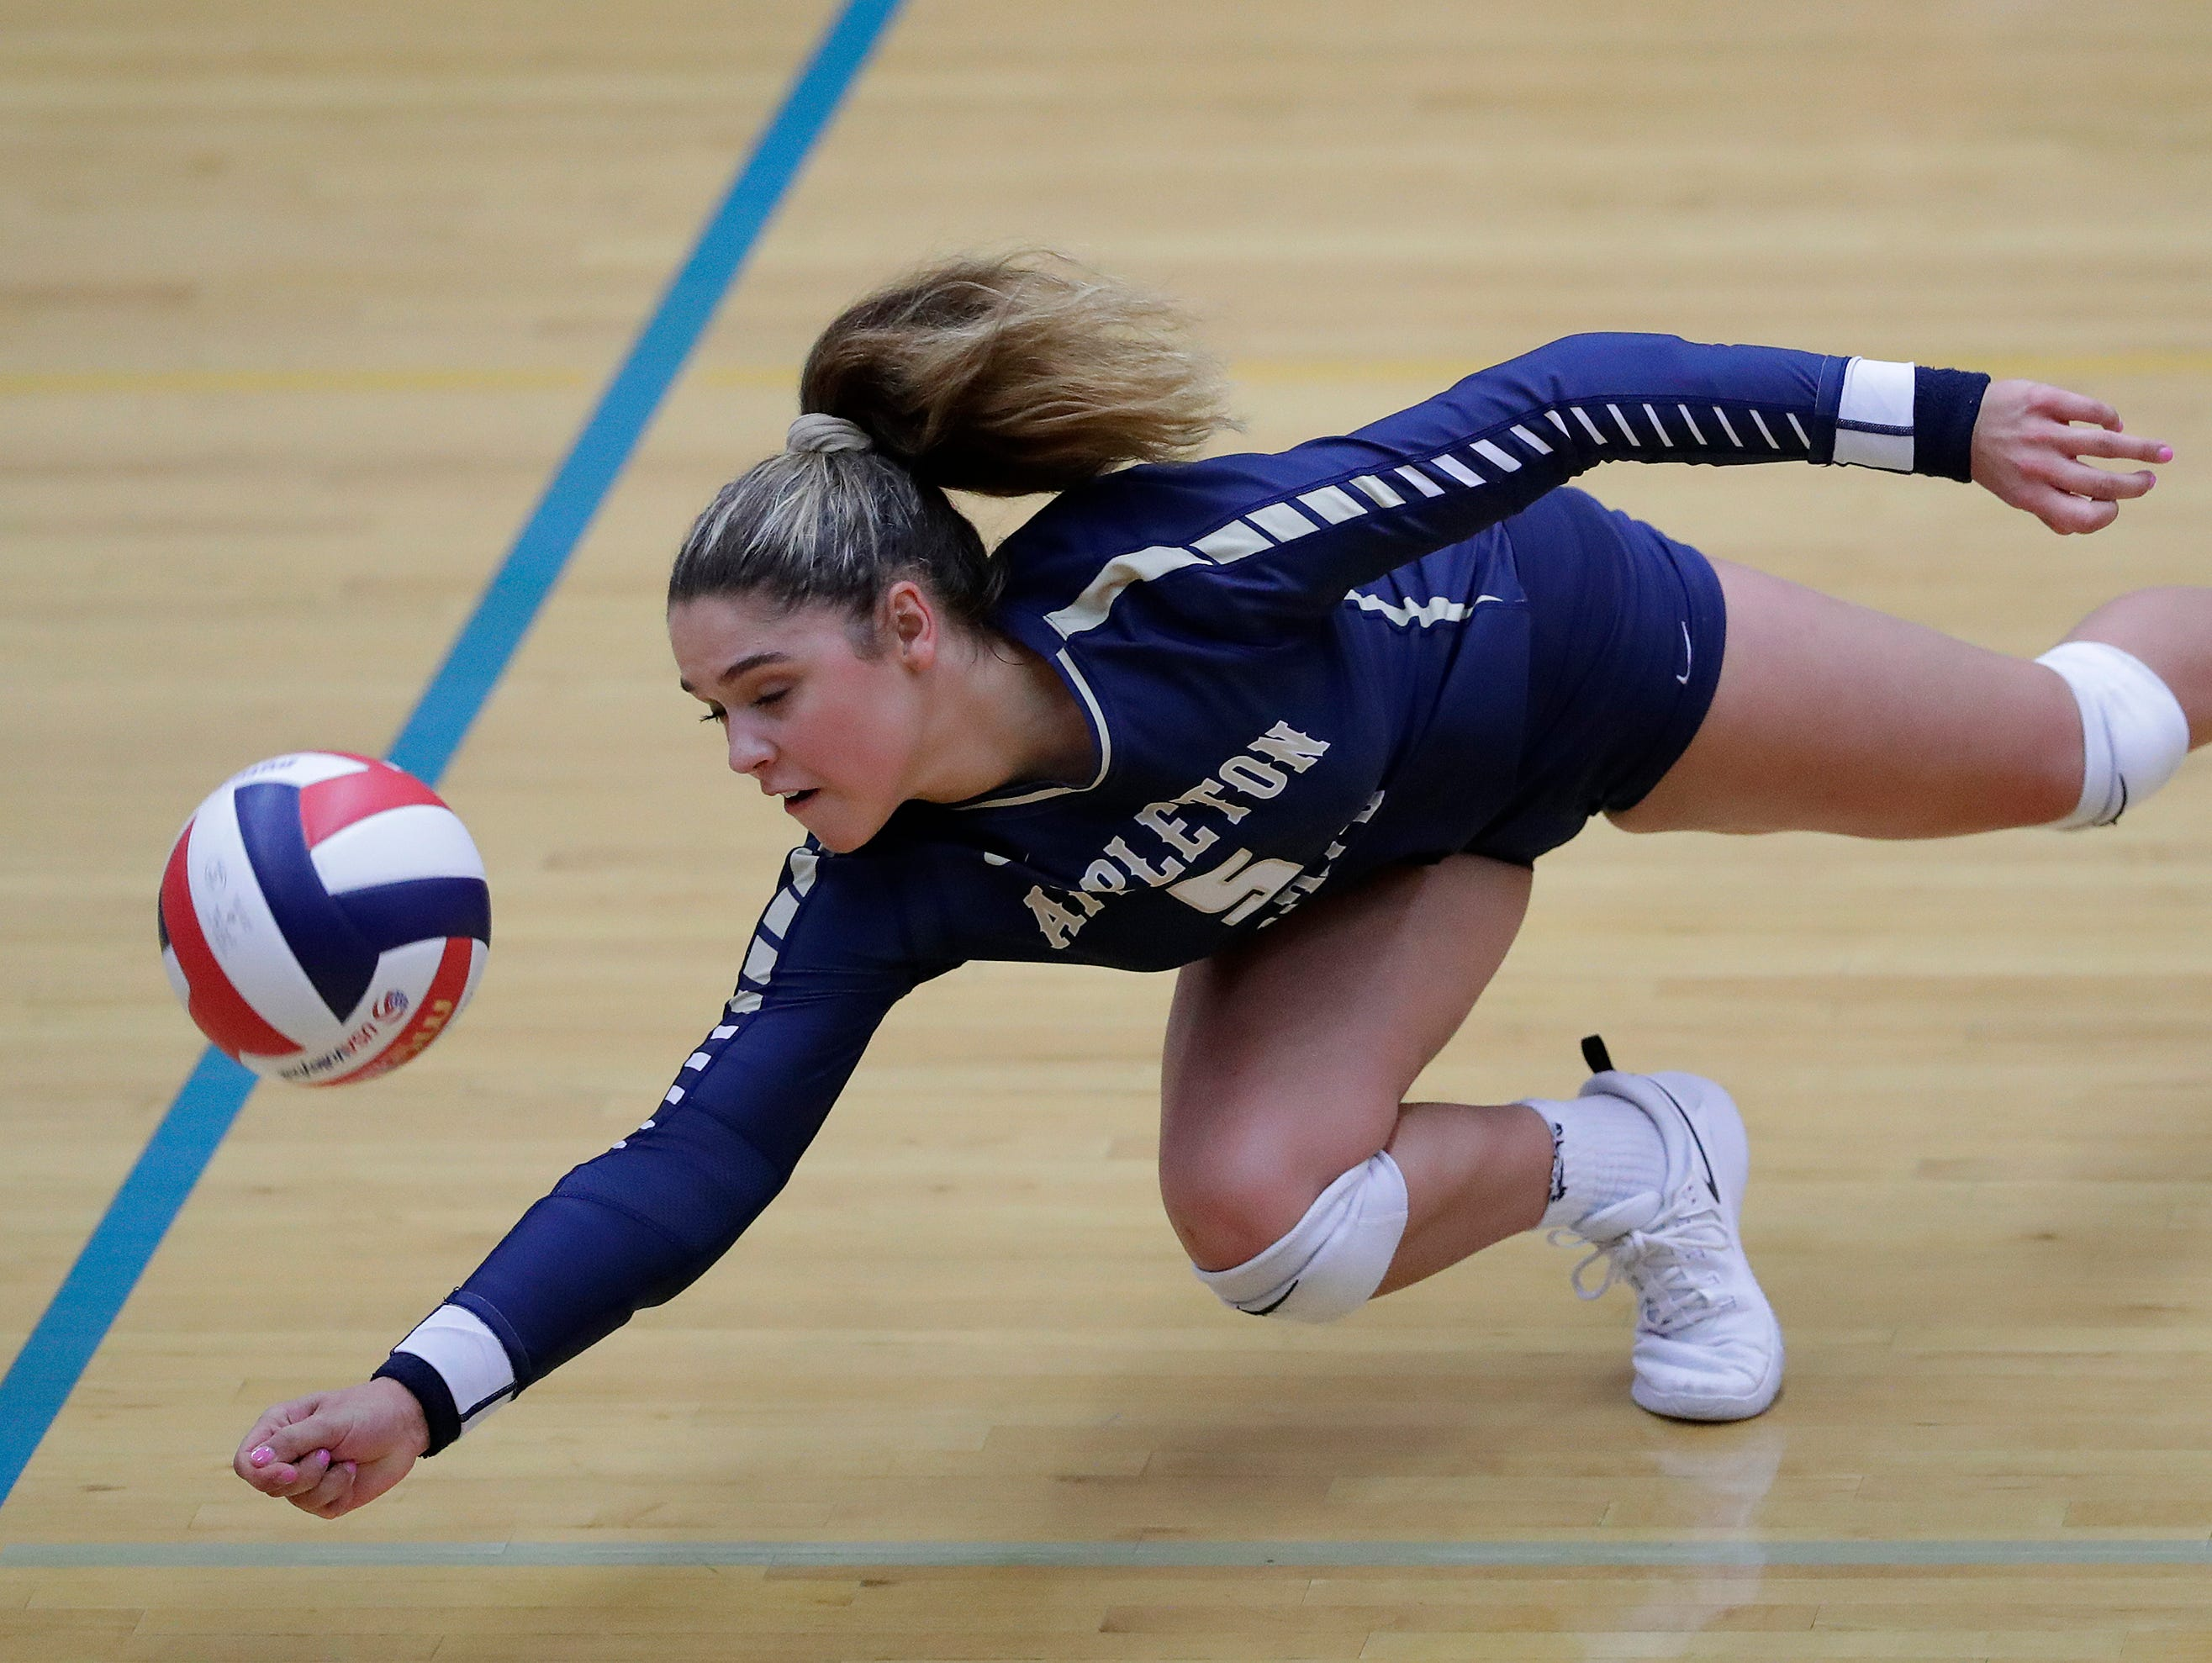 Appleton North High School's Niki Van Wyk (5) dives to save a point against Kimberly High School during their girls volleyball match Thursday, Sept. 27, 2018, in Appleton, Wis. Dan Powers/USA TODAY NETWORK-Wisconsin